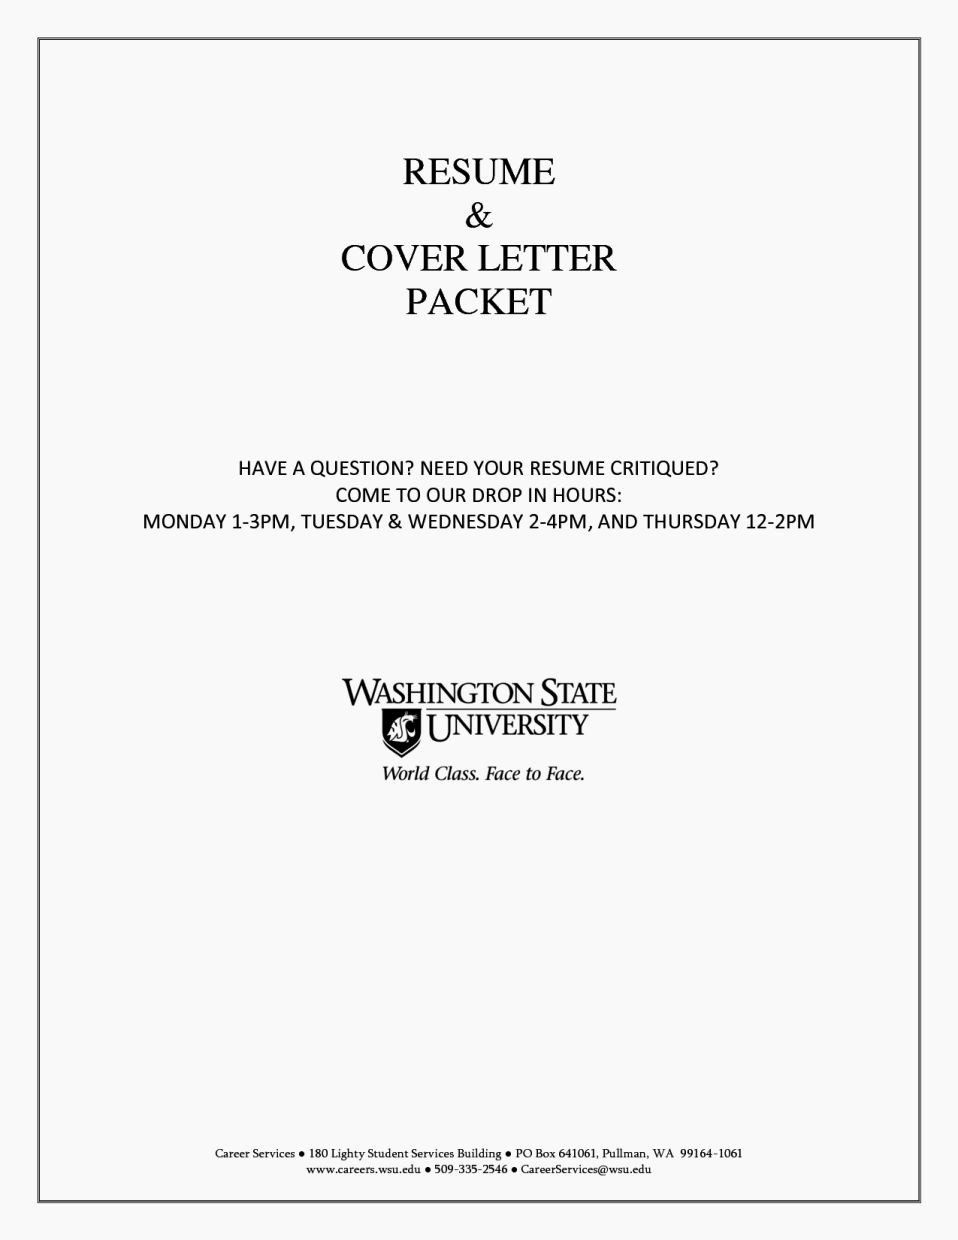 Cv and Cover Letter Template Inspirational Cover Page for Resume Examples Resume Template